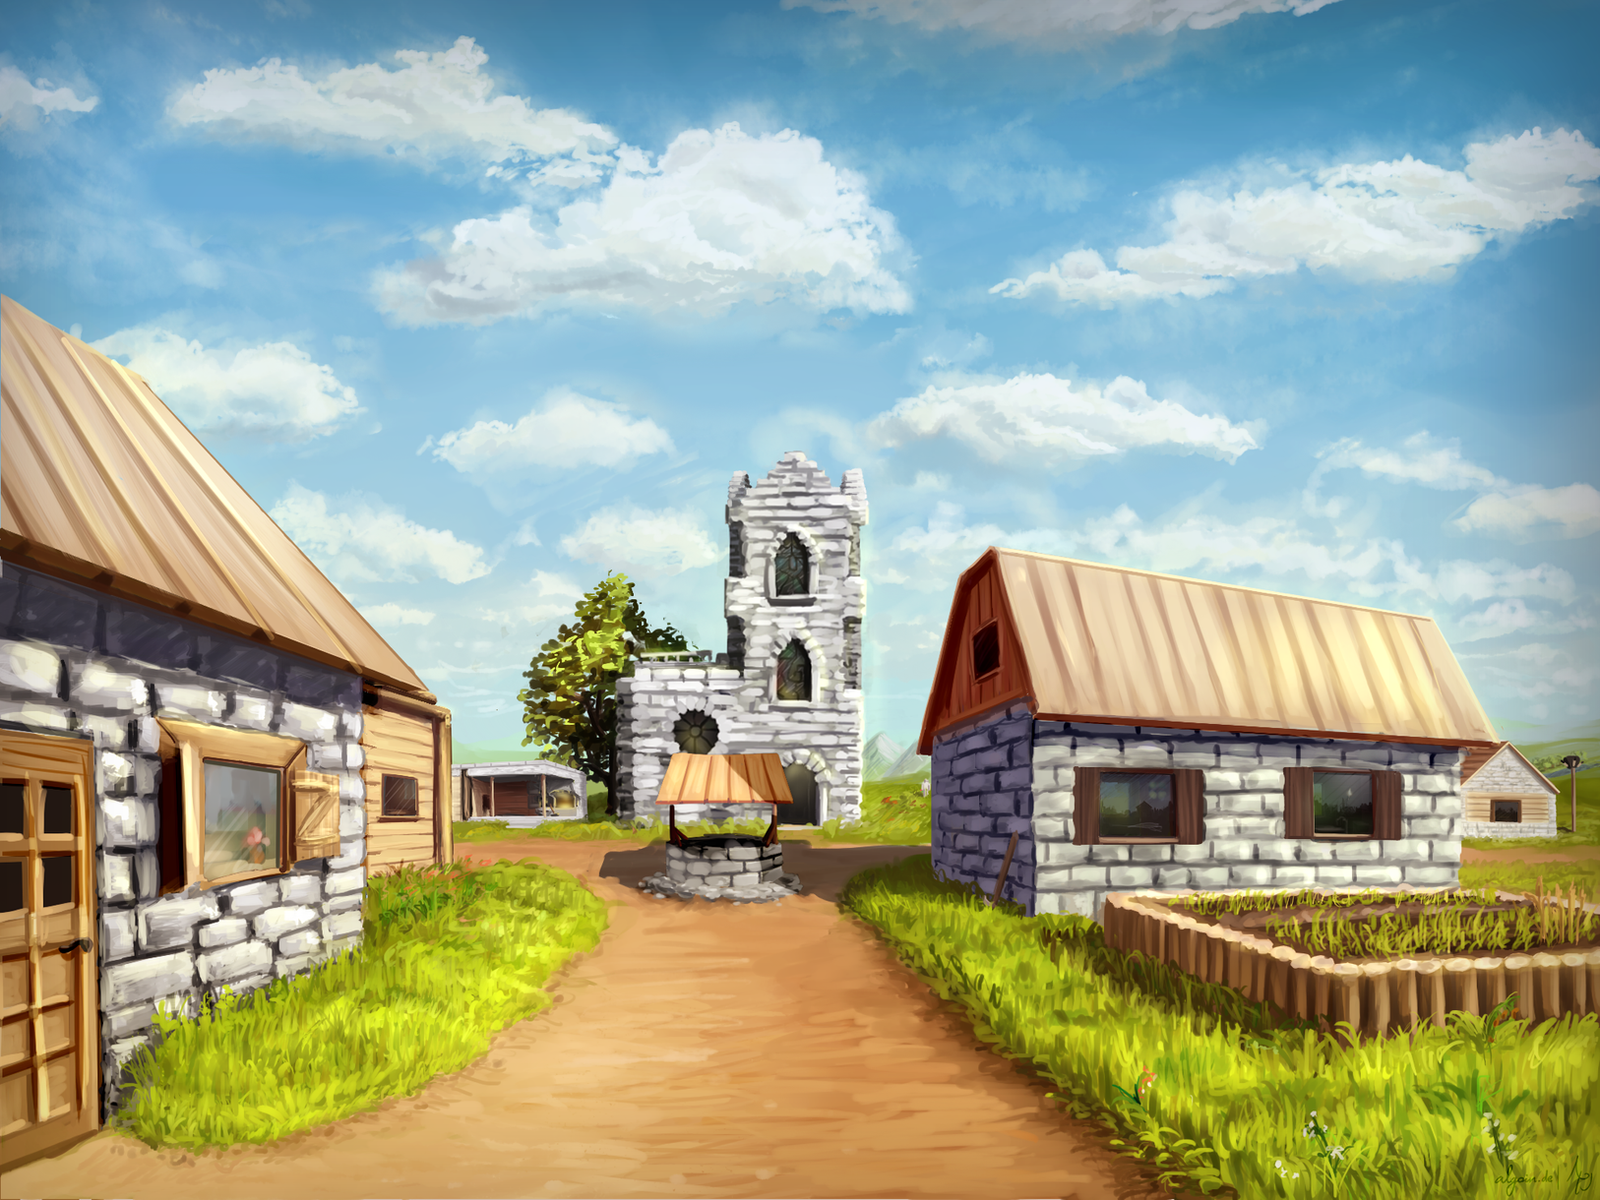 Amazing Wallpaper Minecraft Real Life - minecraft_village_by_algoinde-d8i3kbh  Graphic_95584.png